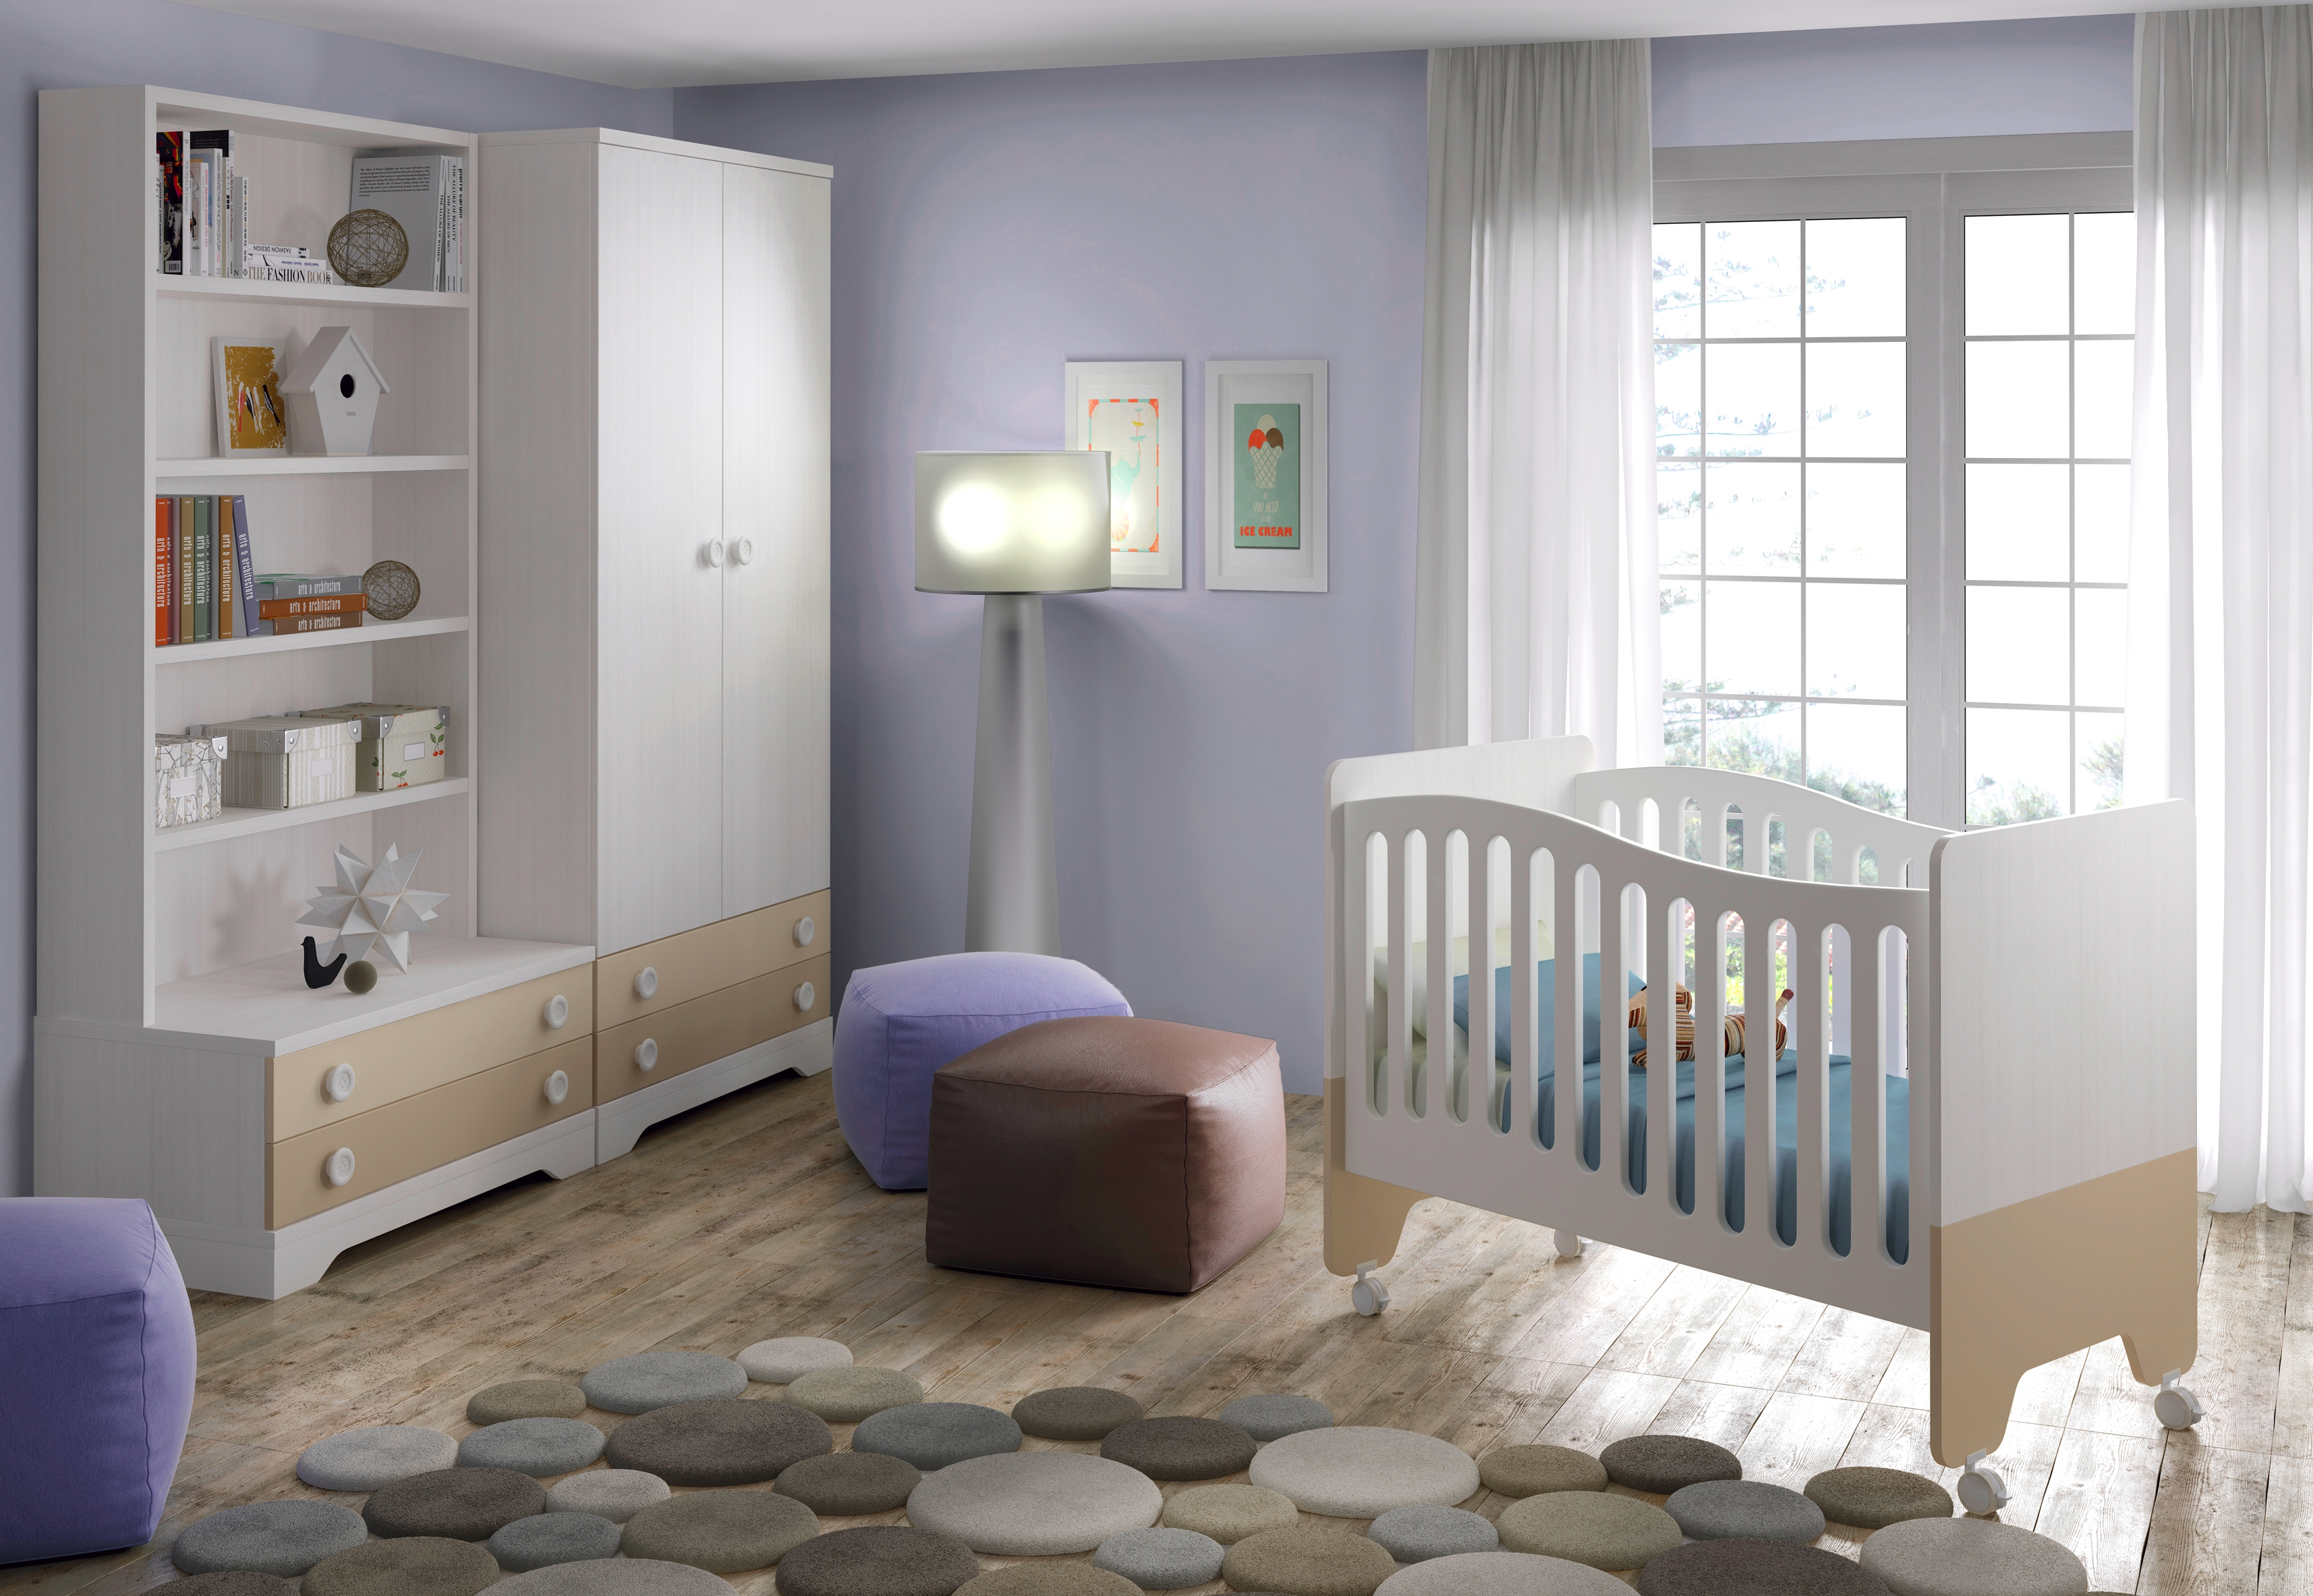 Design chambre de b b for Decoration chambre de bebe unisex